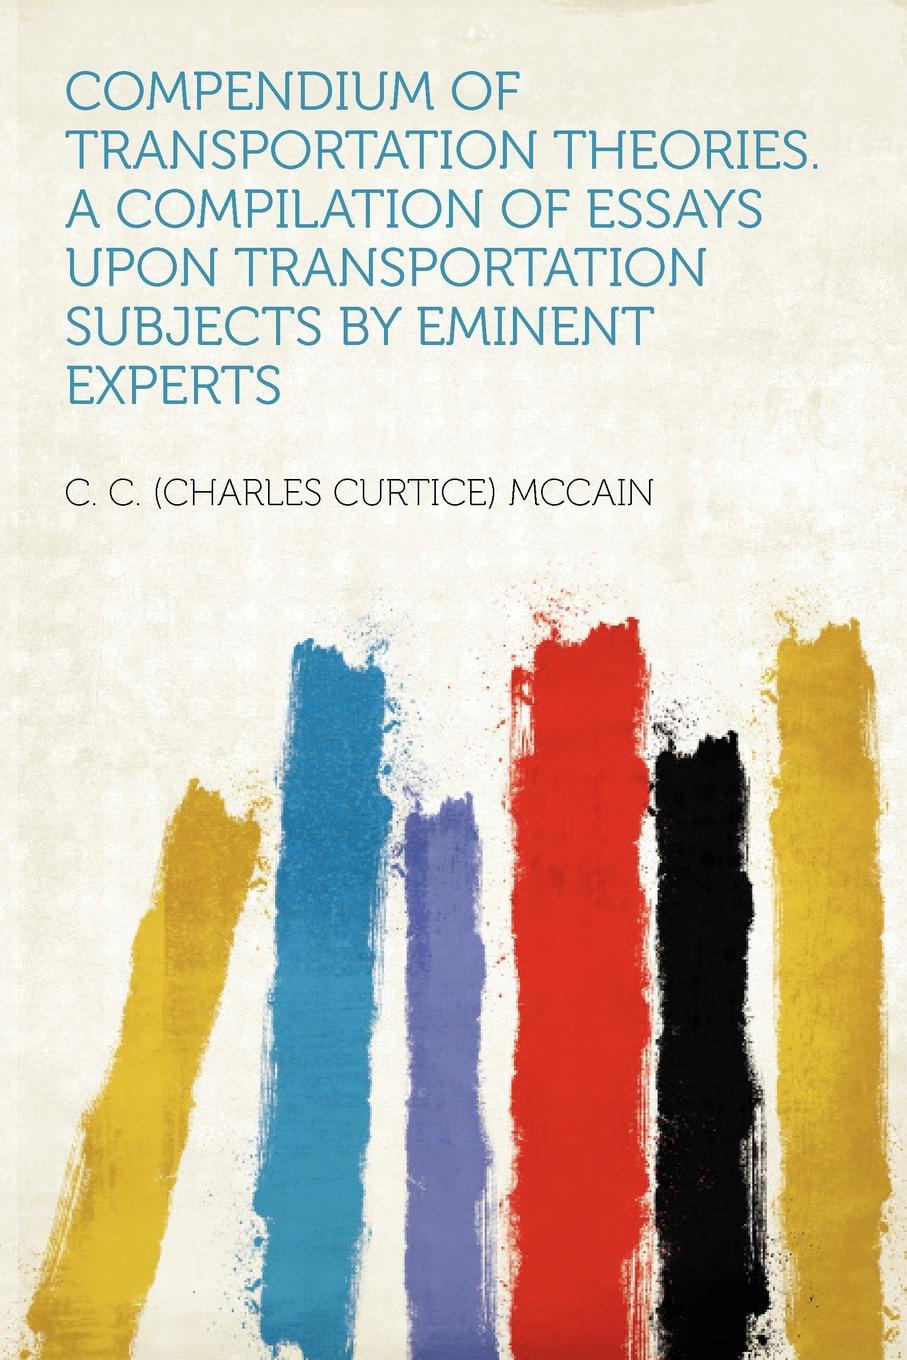 Compendium of Transportation Theories. a Compilation Essays Upon Subjects by Eminent Experts